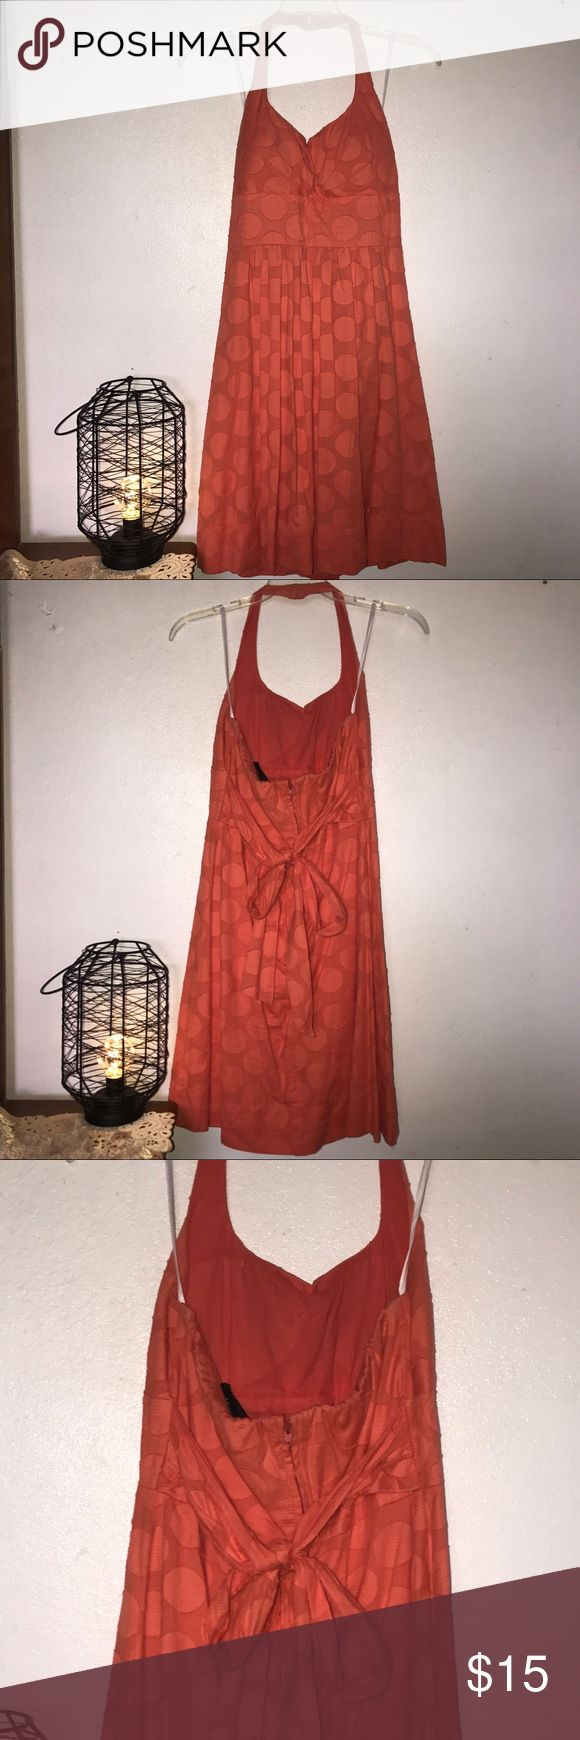 🦀Coral Summer Dress🦀 🦀Beautiful Coral Summer Dress🦀 Brand: B. Smart🦑Perfect for every occasion, even to go on a boat trip. Perfect for dates day and night. Worn only for a graduation. Don't look dull this summer and look like a summer goddess.💖 B. Smart Dresses Backless